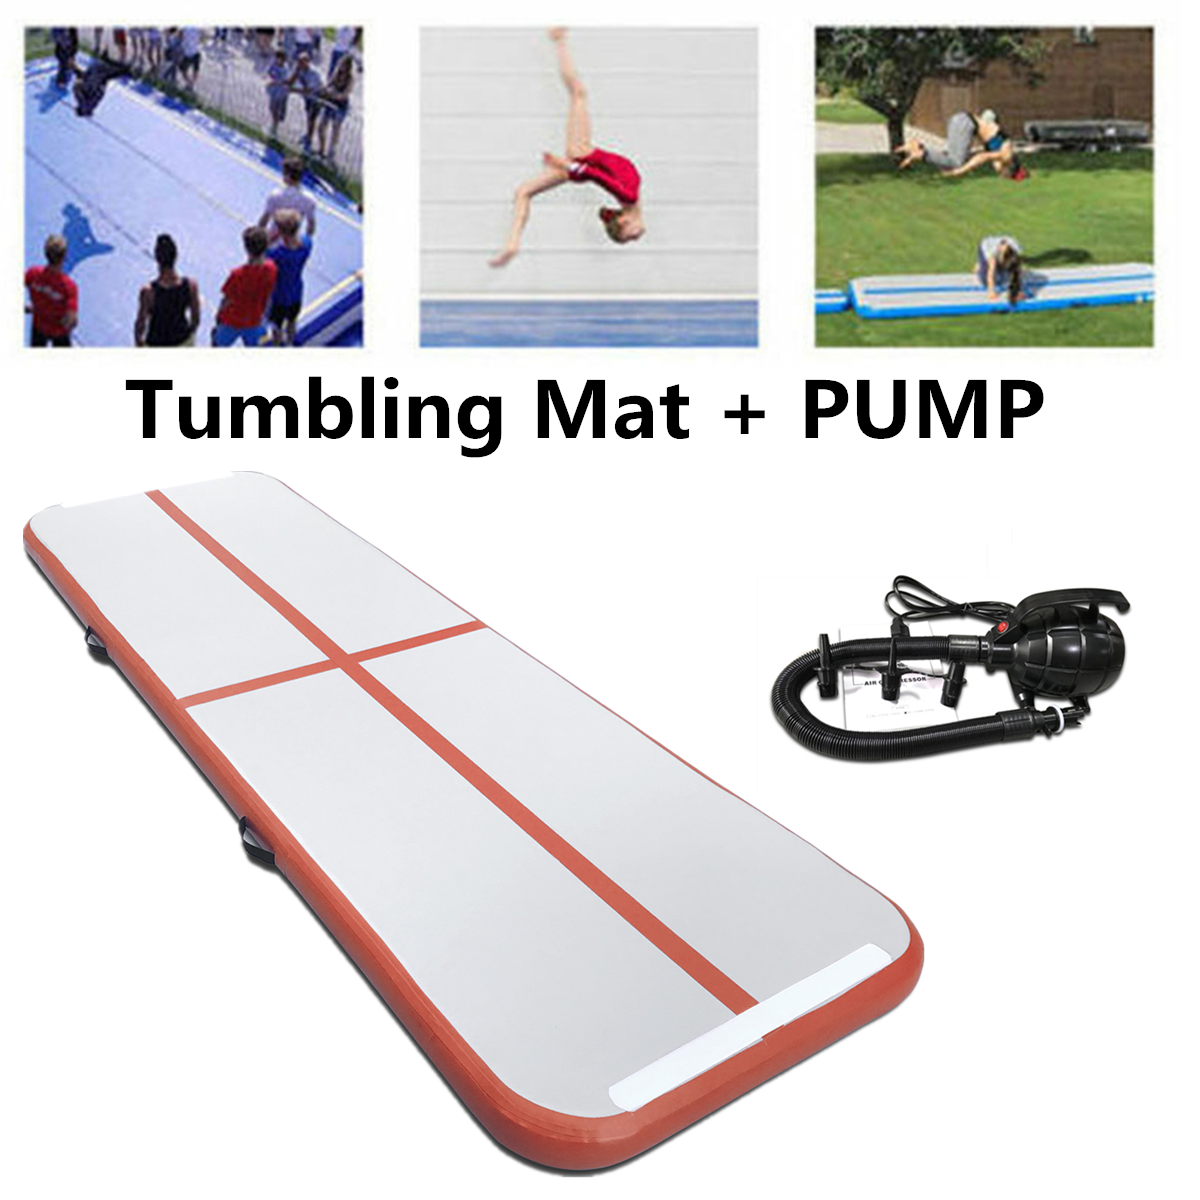 4m*1m*20cm Inflatable Air Track Tumbling Gym Yoga Mat for Home Use Training Gymnastics Airtrack Floor Mats Fitness Equipment